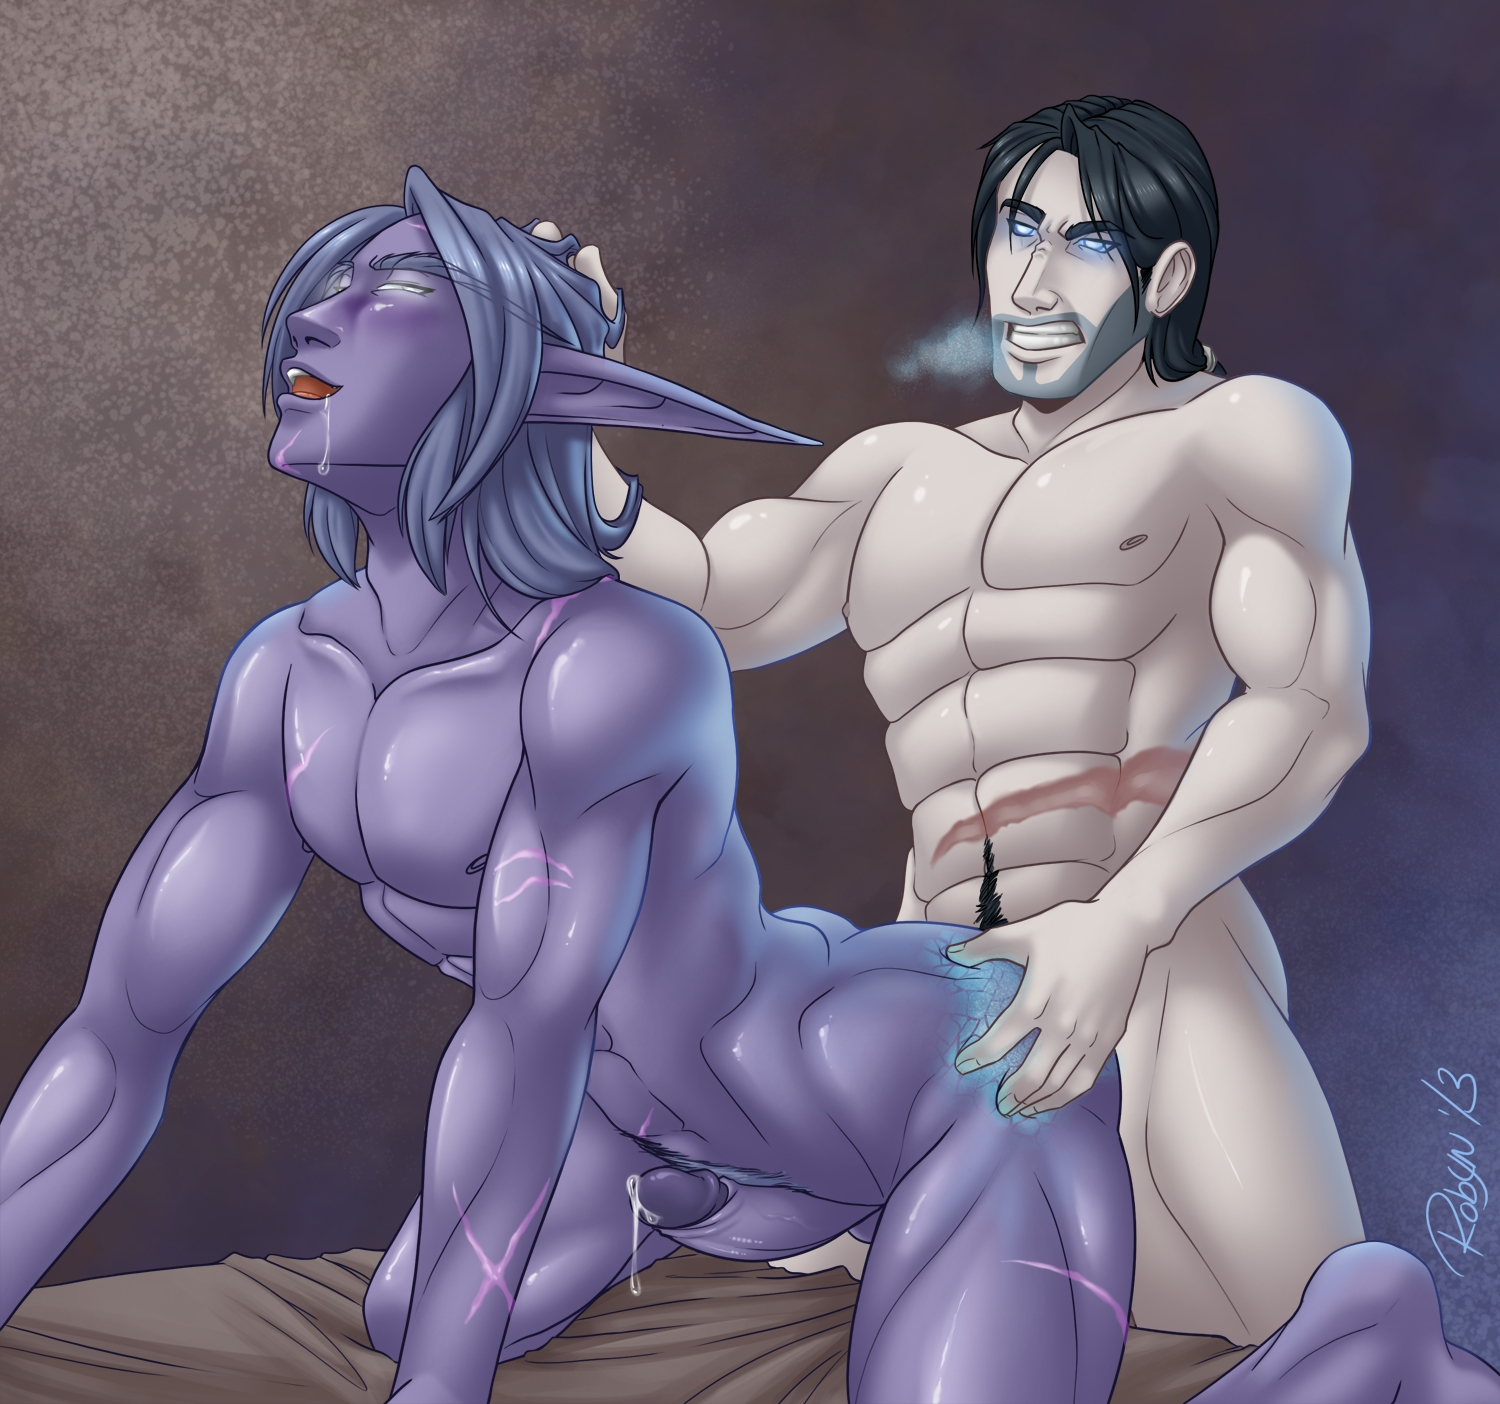 Draenei porno picsix naked photos